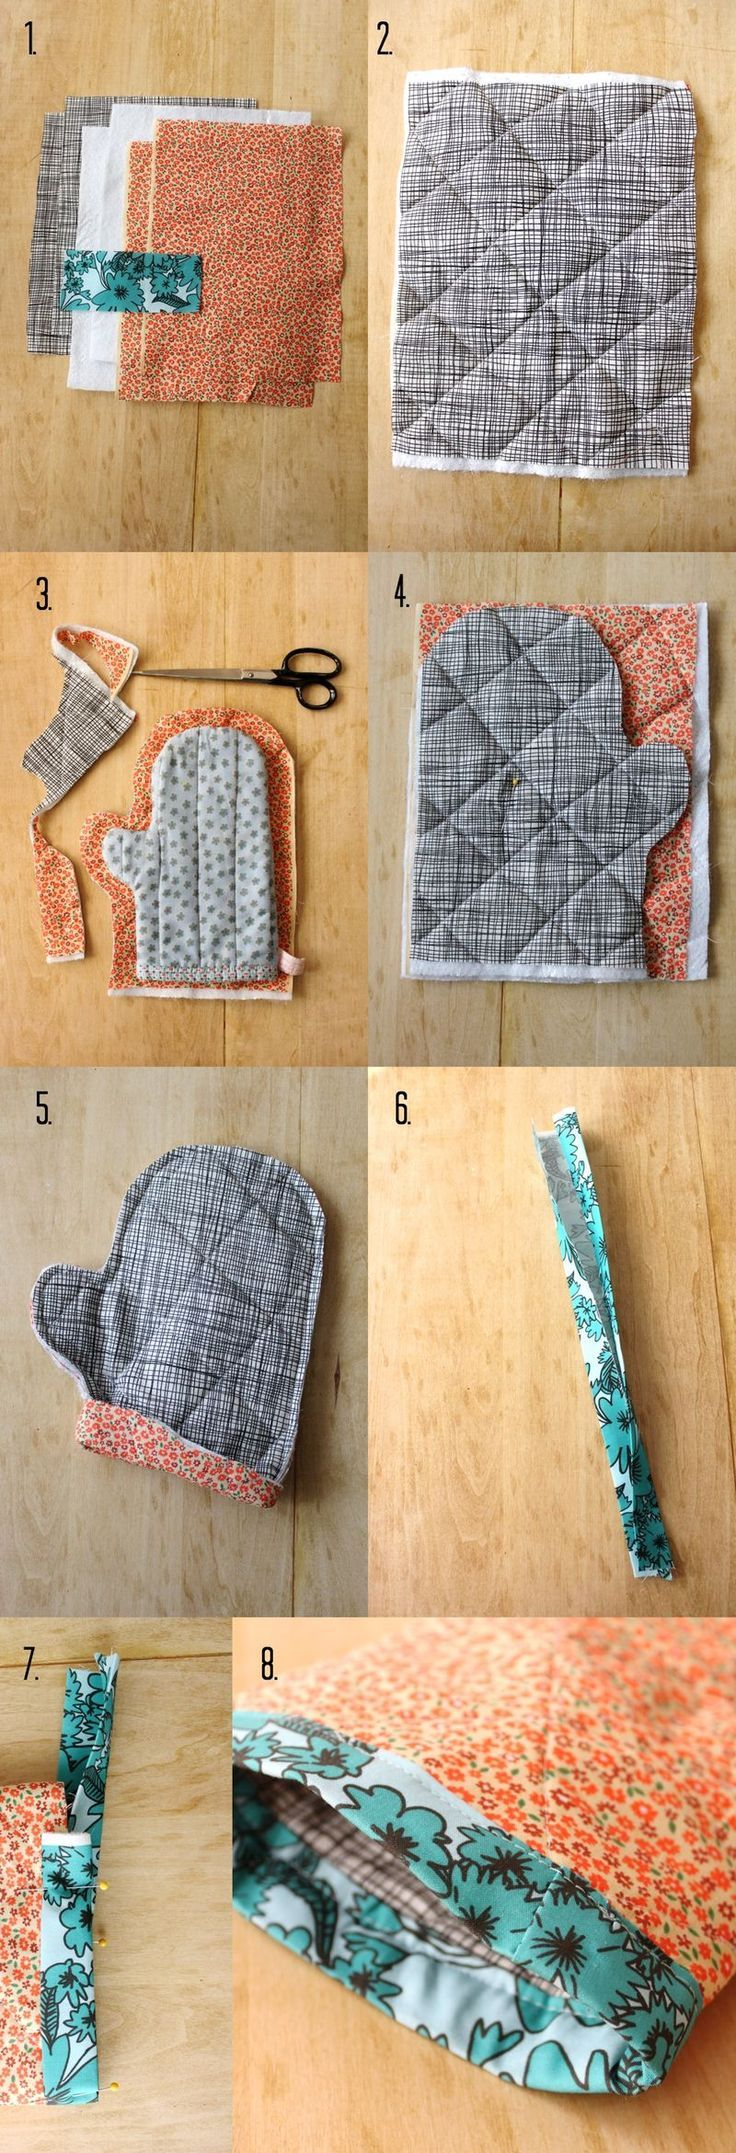 make your own oven mitts sewing pinterest diy and crafts ovens and make your own. Black Bedroom Furniture Sets. Home Design Ideas